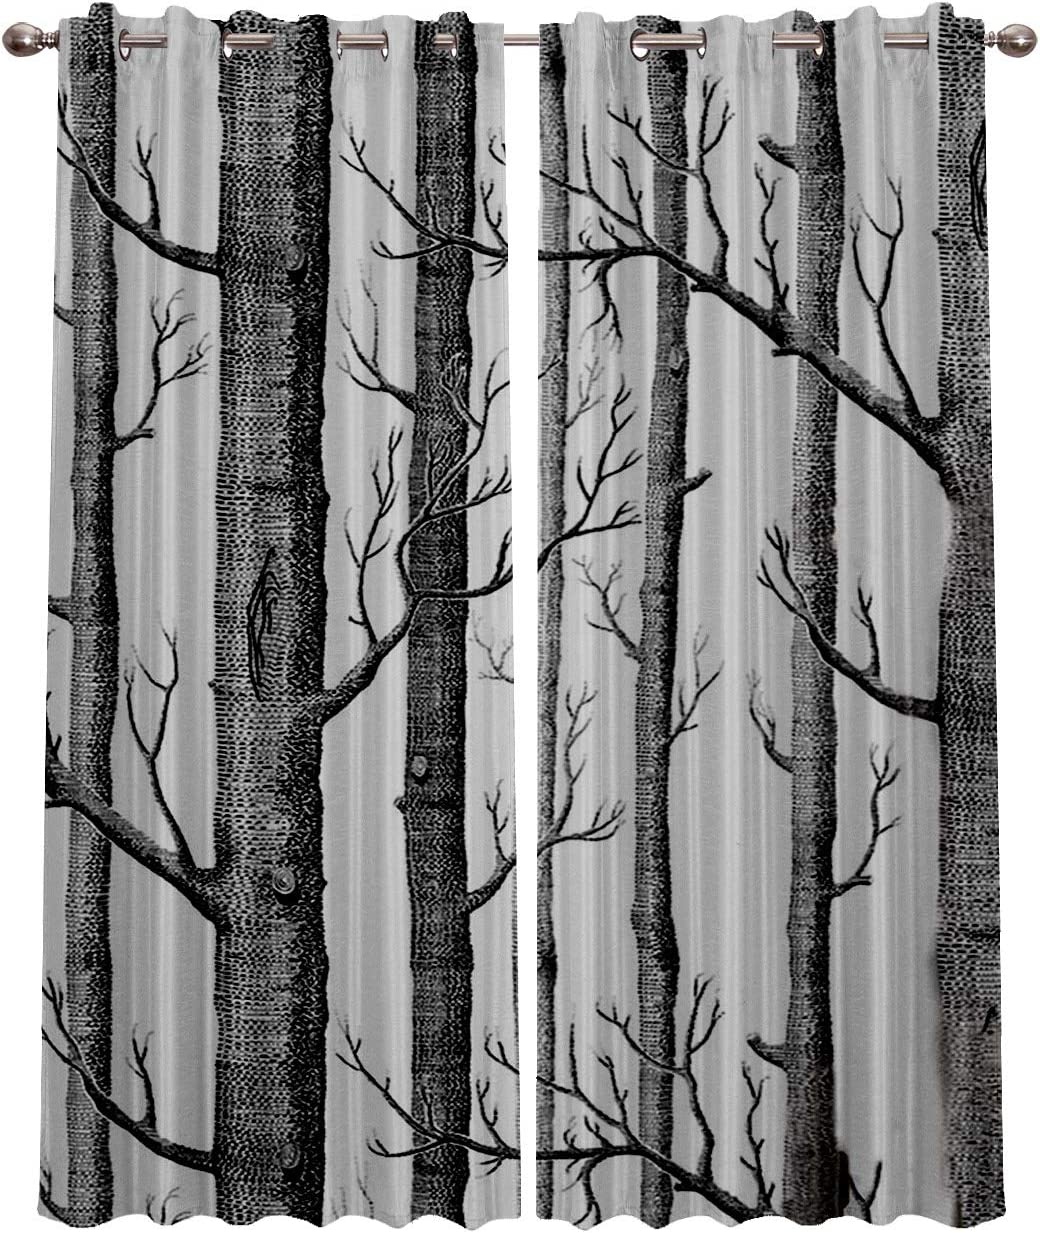 Blackout Curtain Panels Window Draperies for Living Room Bedroom Kitchen, Insulating Room Darkening Grommet Window Treatments, White Birch Forest Old Branches Tree Grey 52 x 96 Inch, 2 Panel